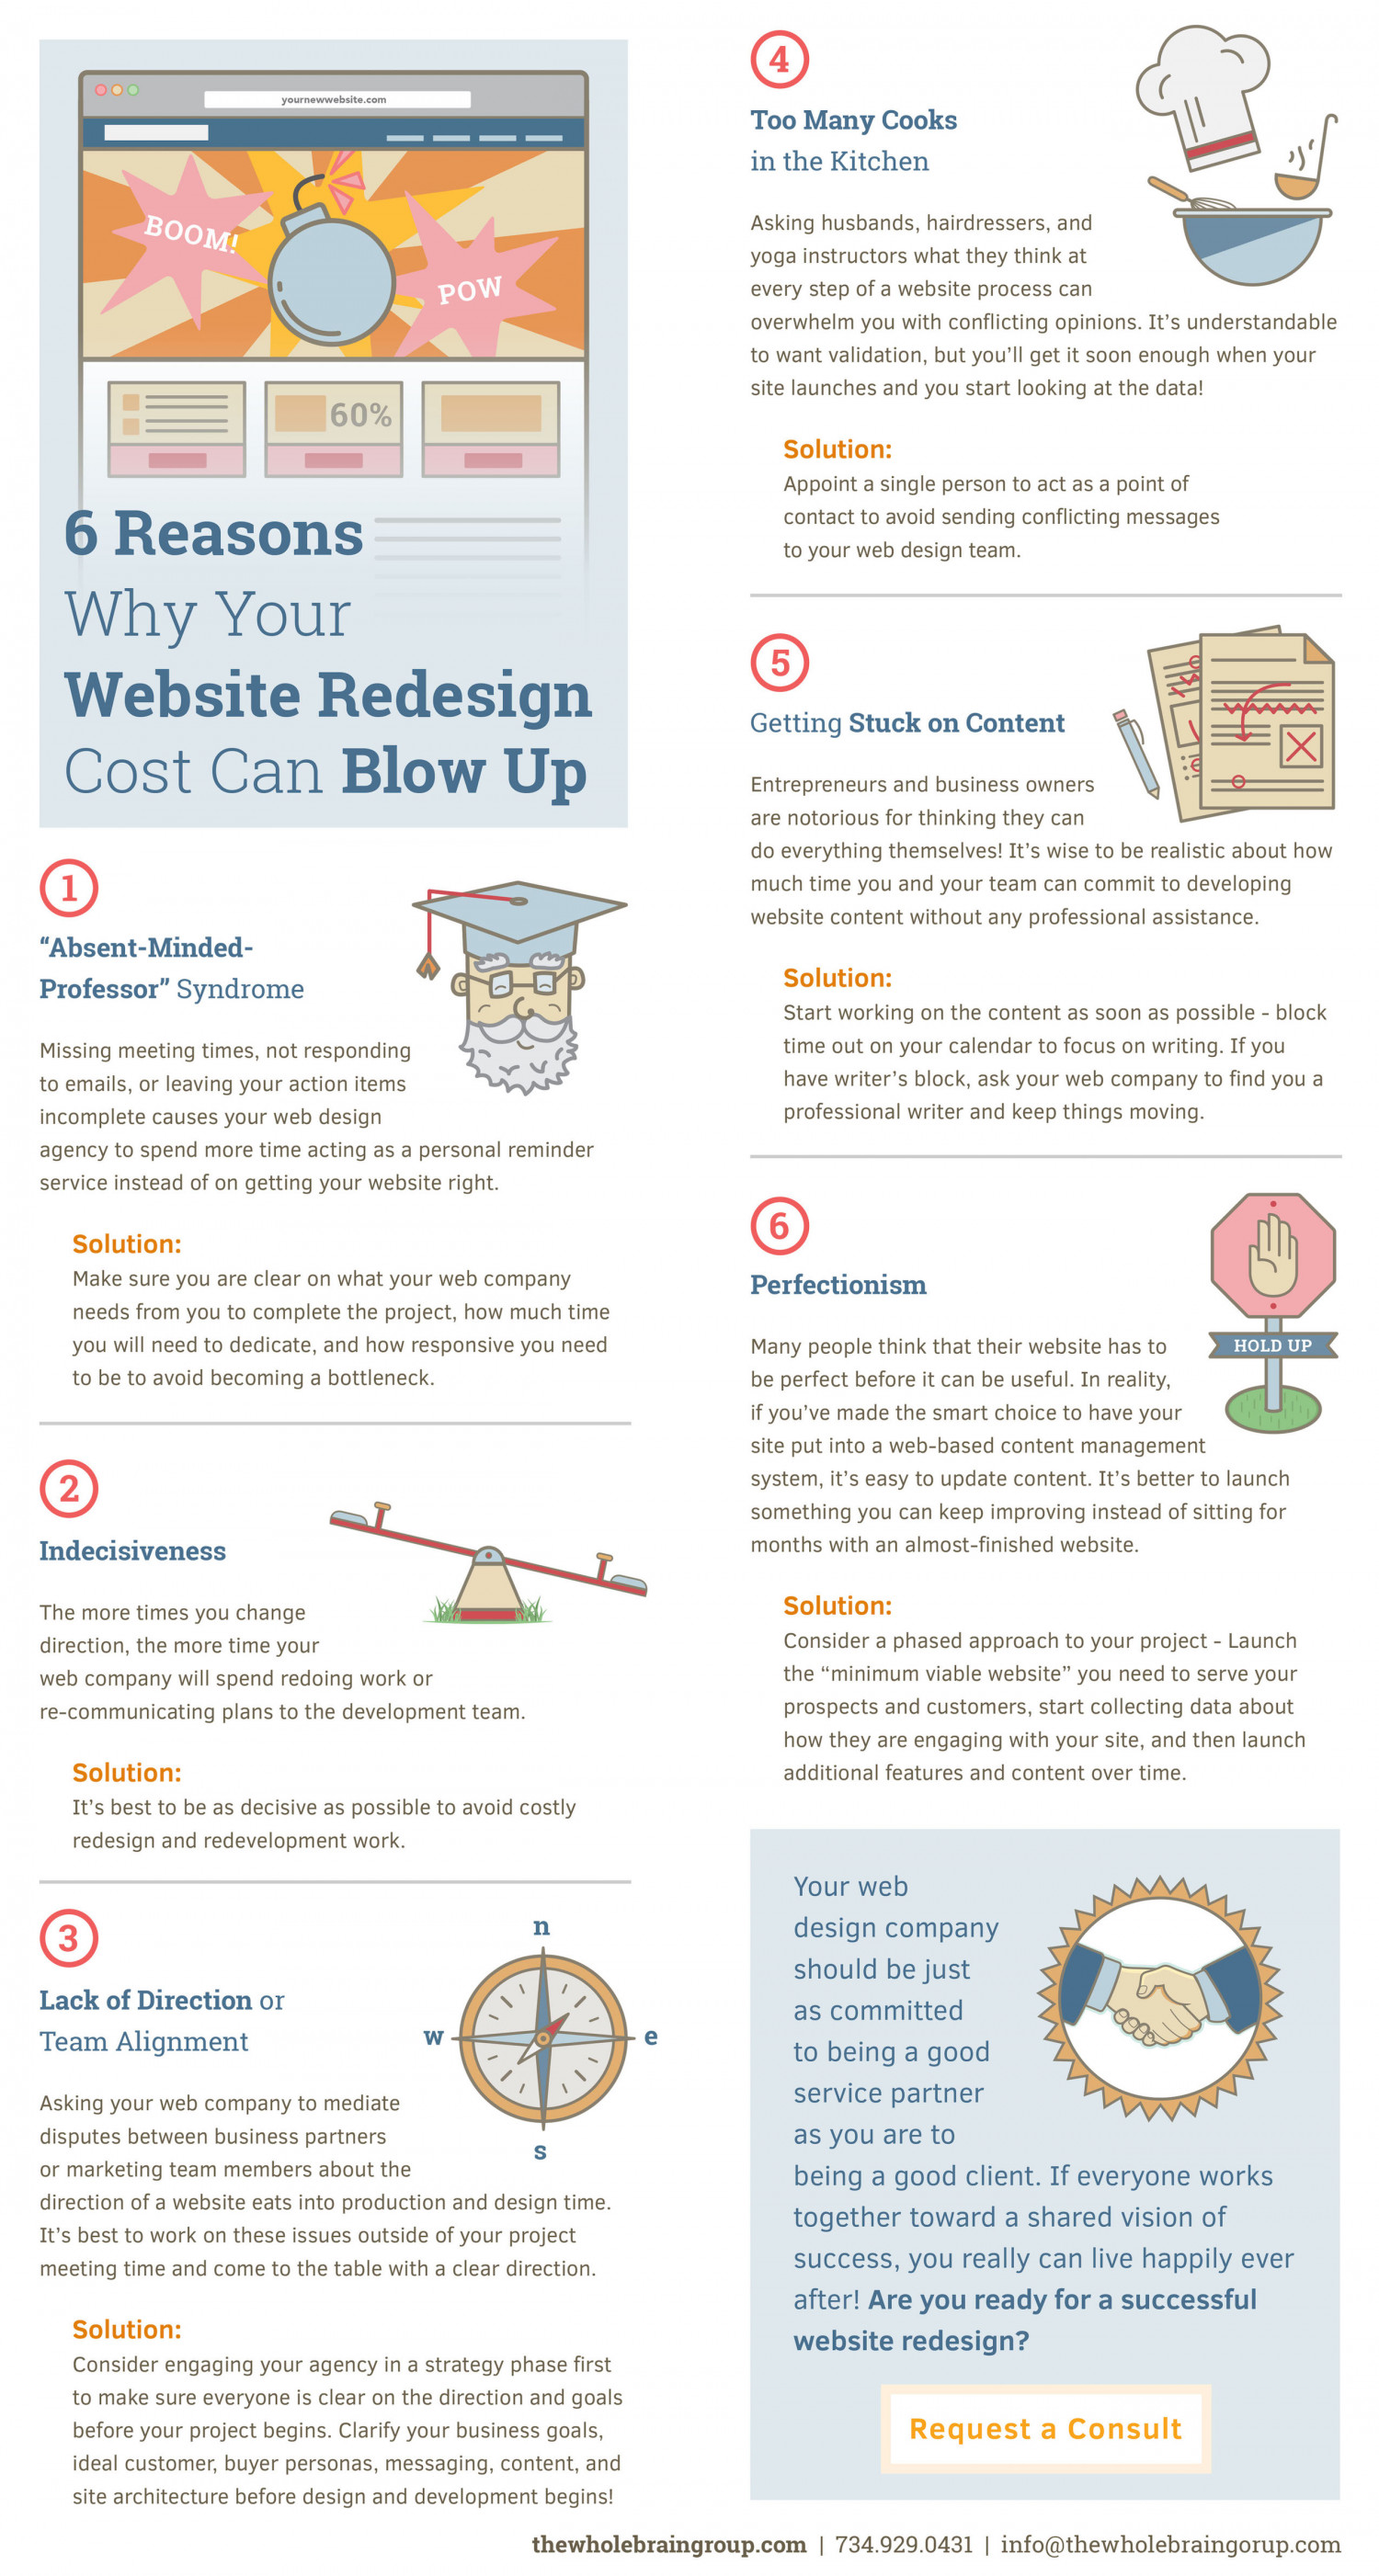 How To Stay Within Budget When Designing a Website